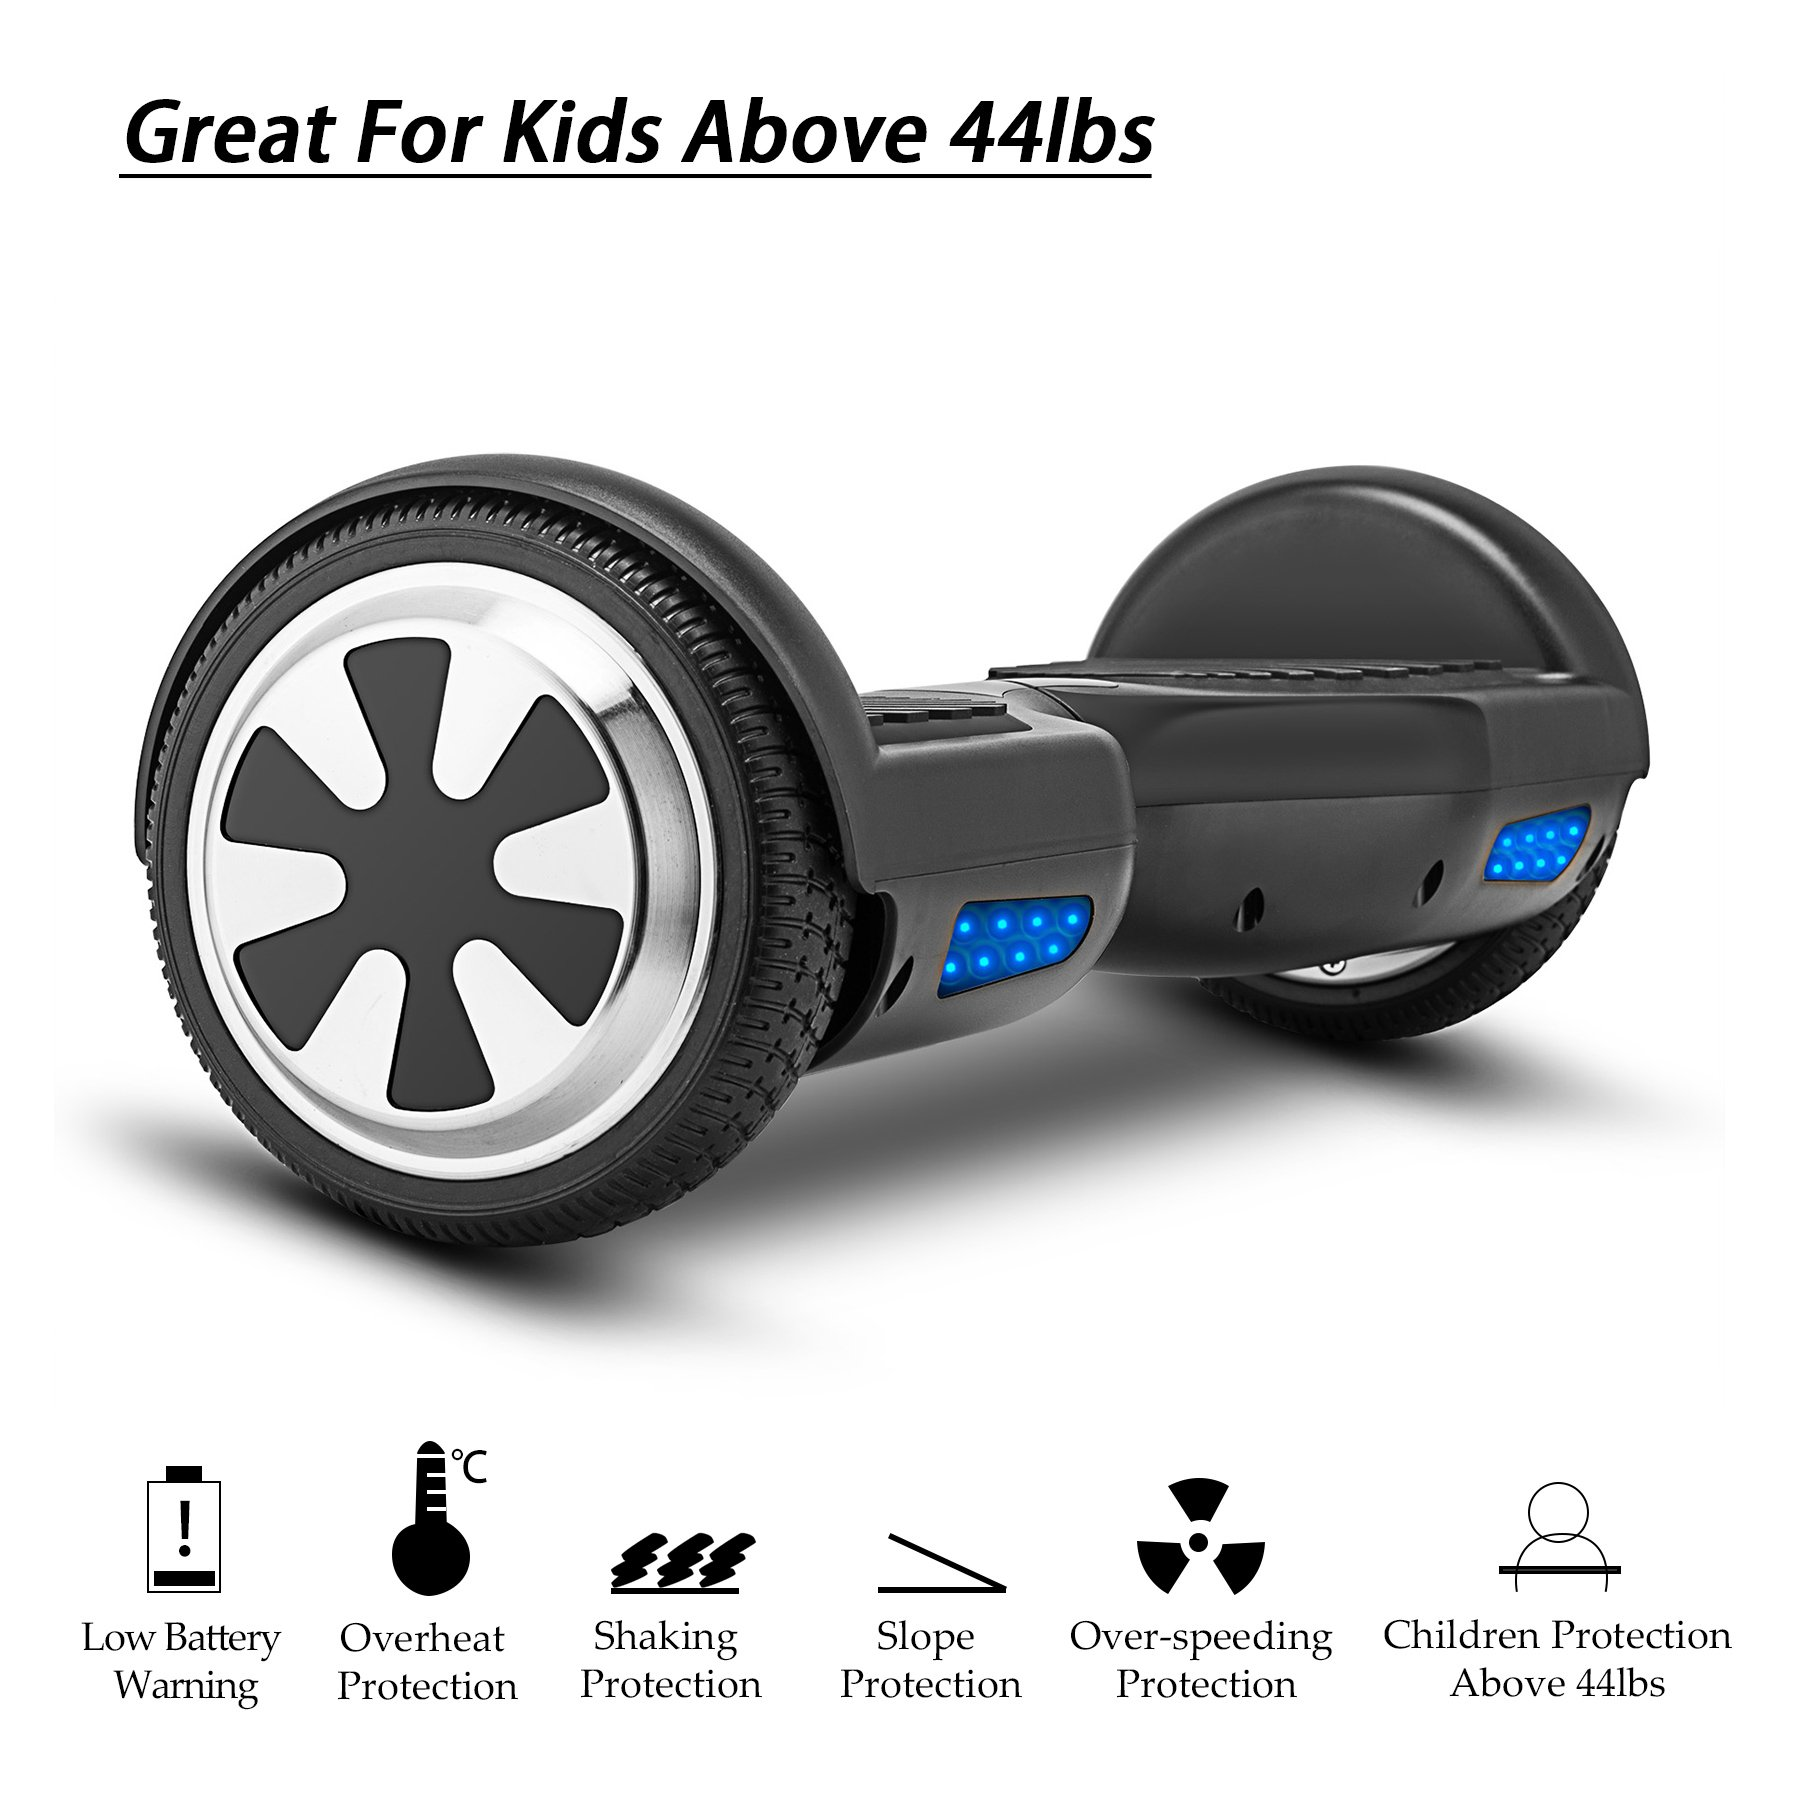 VEEKO Self Balancing Scooter Black Hoverboard with LED Indicator Lights, 350W Dual Motor, UL 2272/2271 Certificate, Alloy Durable Wheels by VEEKO (Image #1)